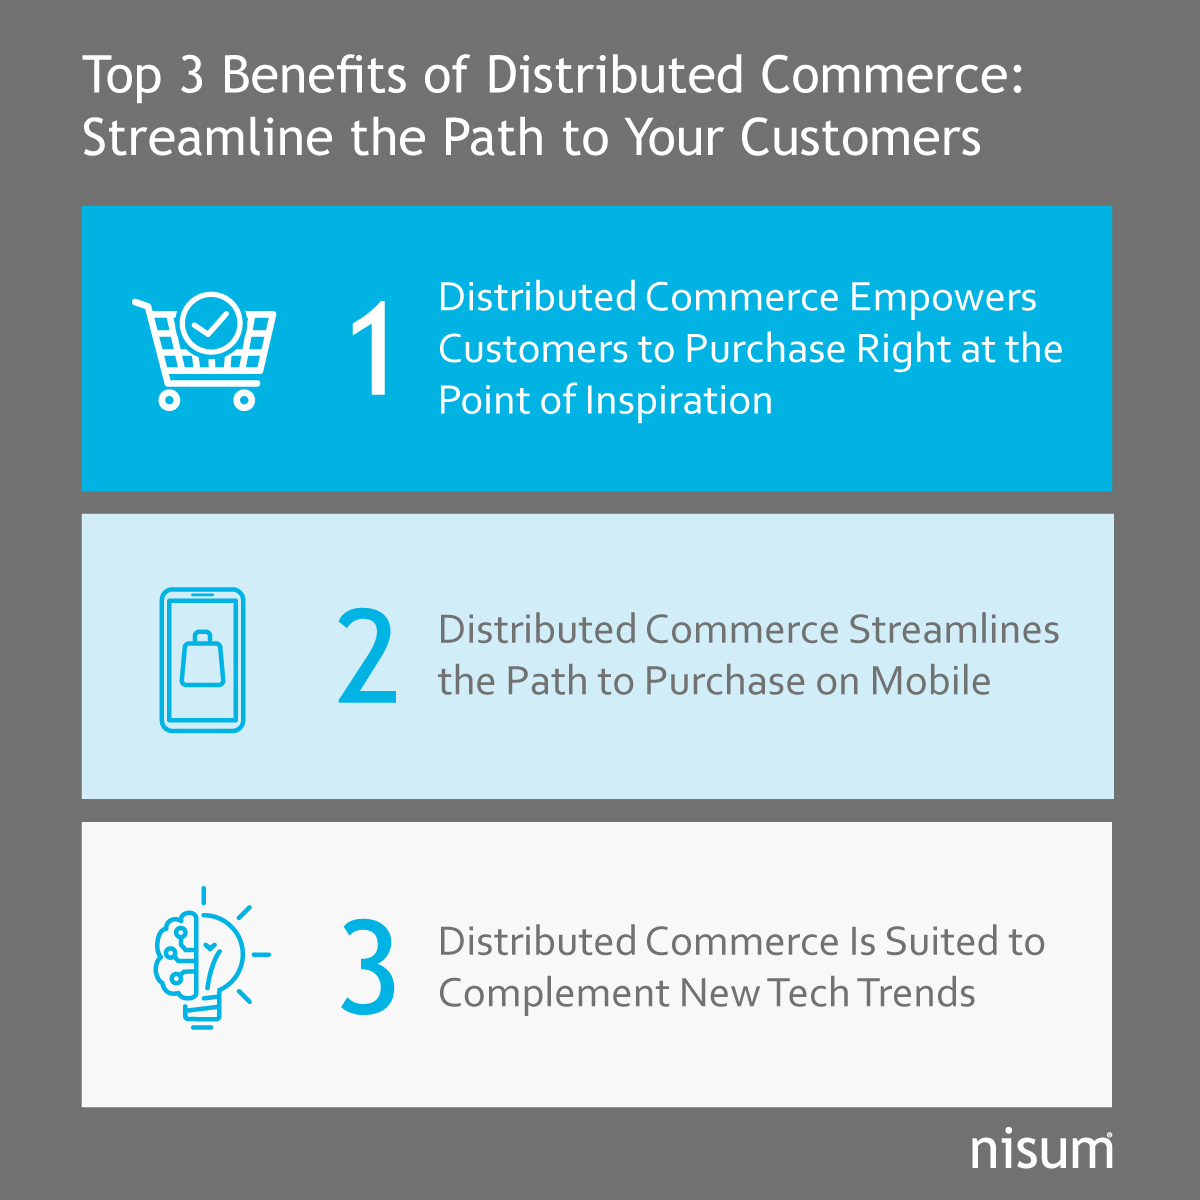 top-3-benefits-of-distributed-commerce-streamline-the-path-to-your-customers-infographic-banner-4